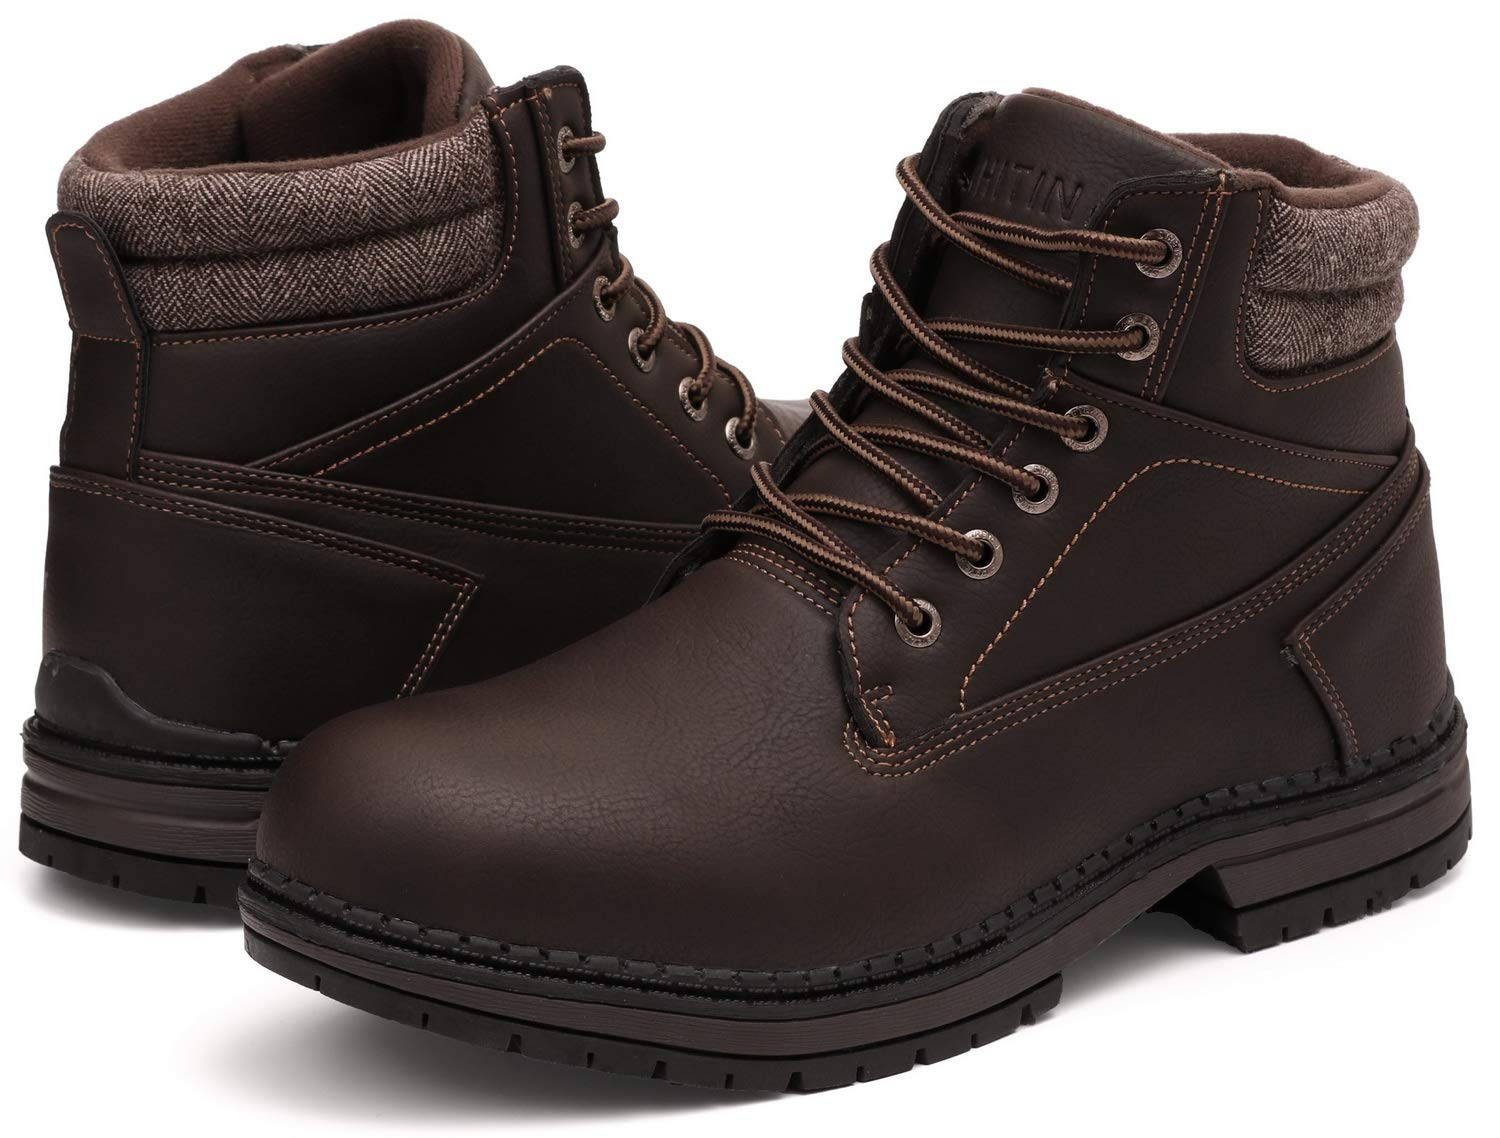 WHITIN Men's Mid Soft Toe Leather Insulated Work Boots Construction Rubber Sole Roofing Waterproof for Outdoor Hiking Winter Snow Most Best Comfortable Lightweight Comfort Comfy Brown Size 8.5 by WHITIN